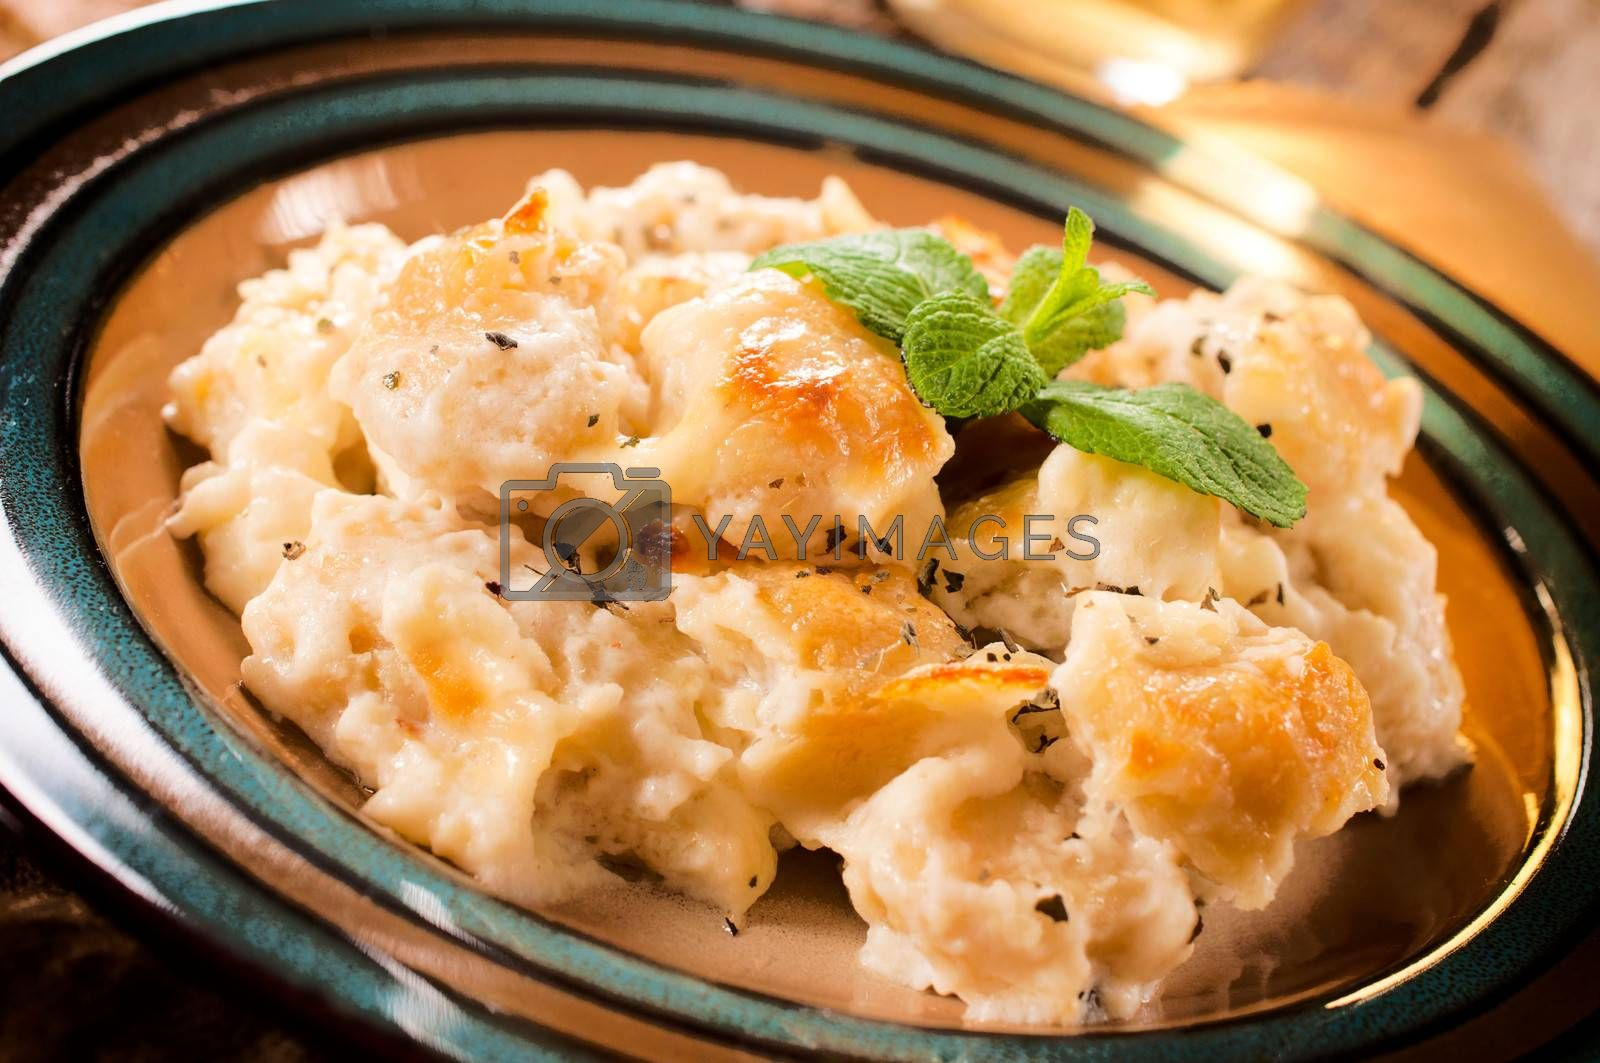 Gnocchi with cheese in the plate.selective focus on the top